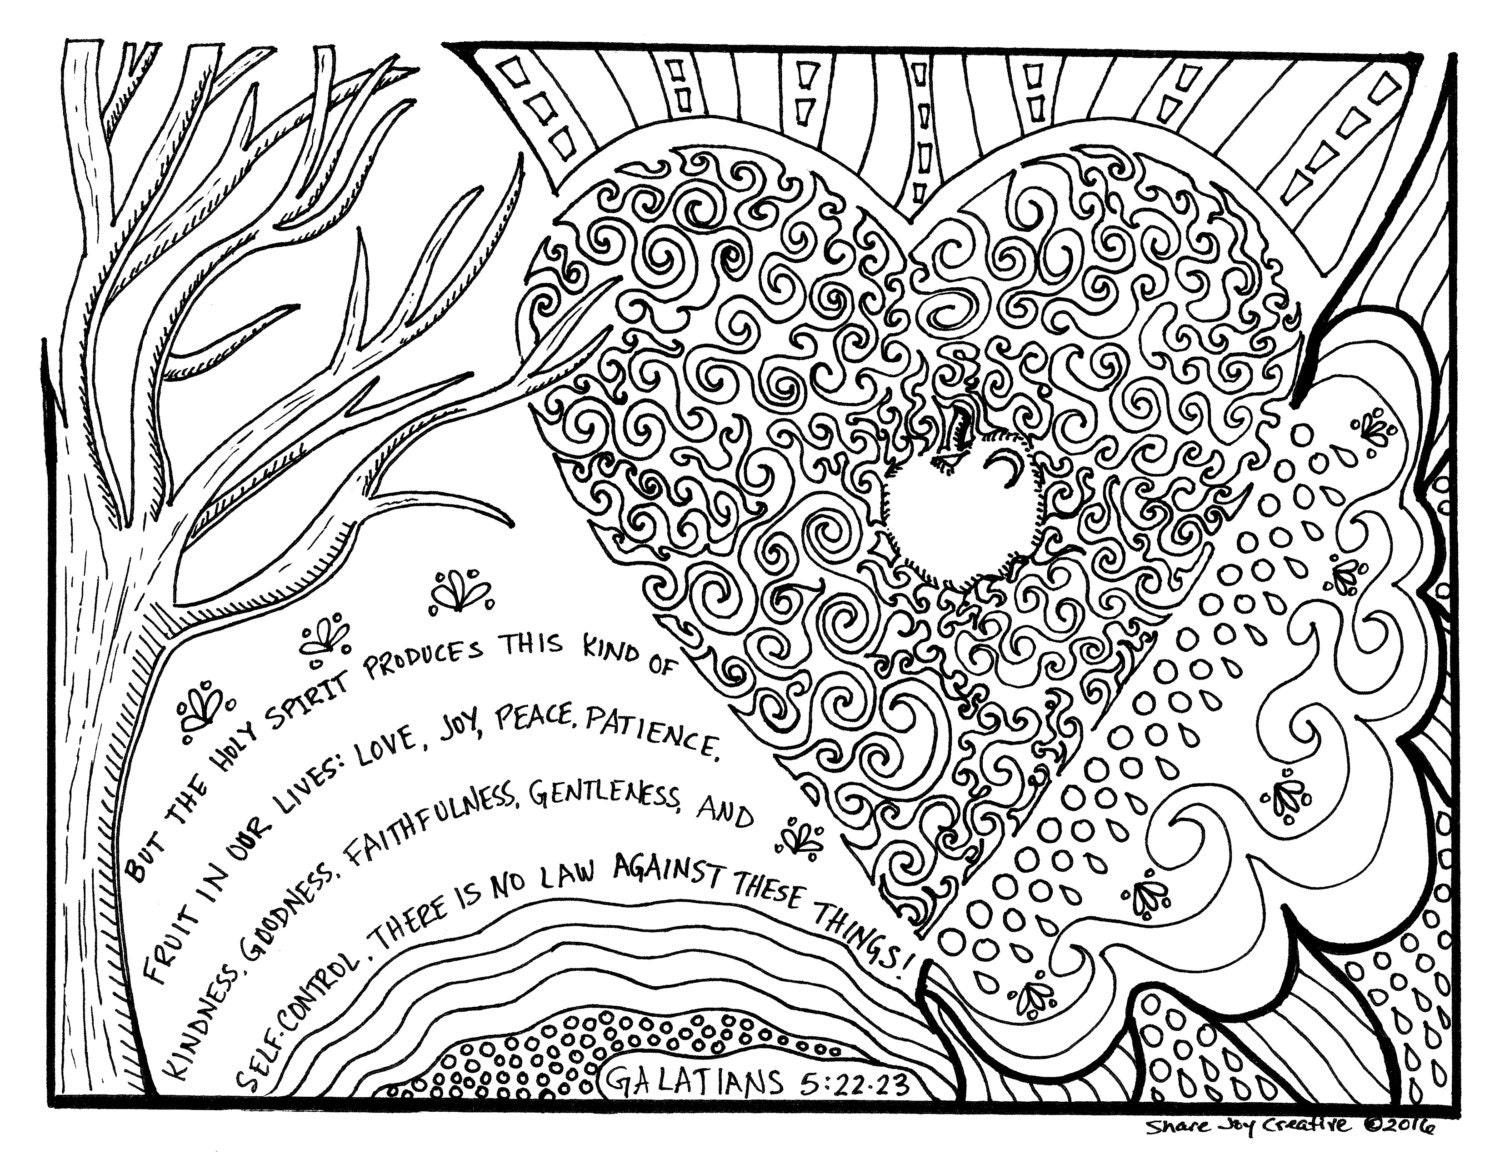 The fruit of the holy spirit coloring page for Gifts of the holy spirit coloring pages